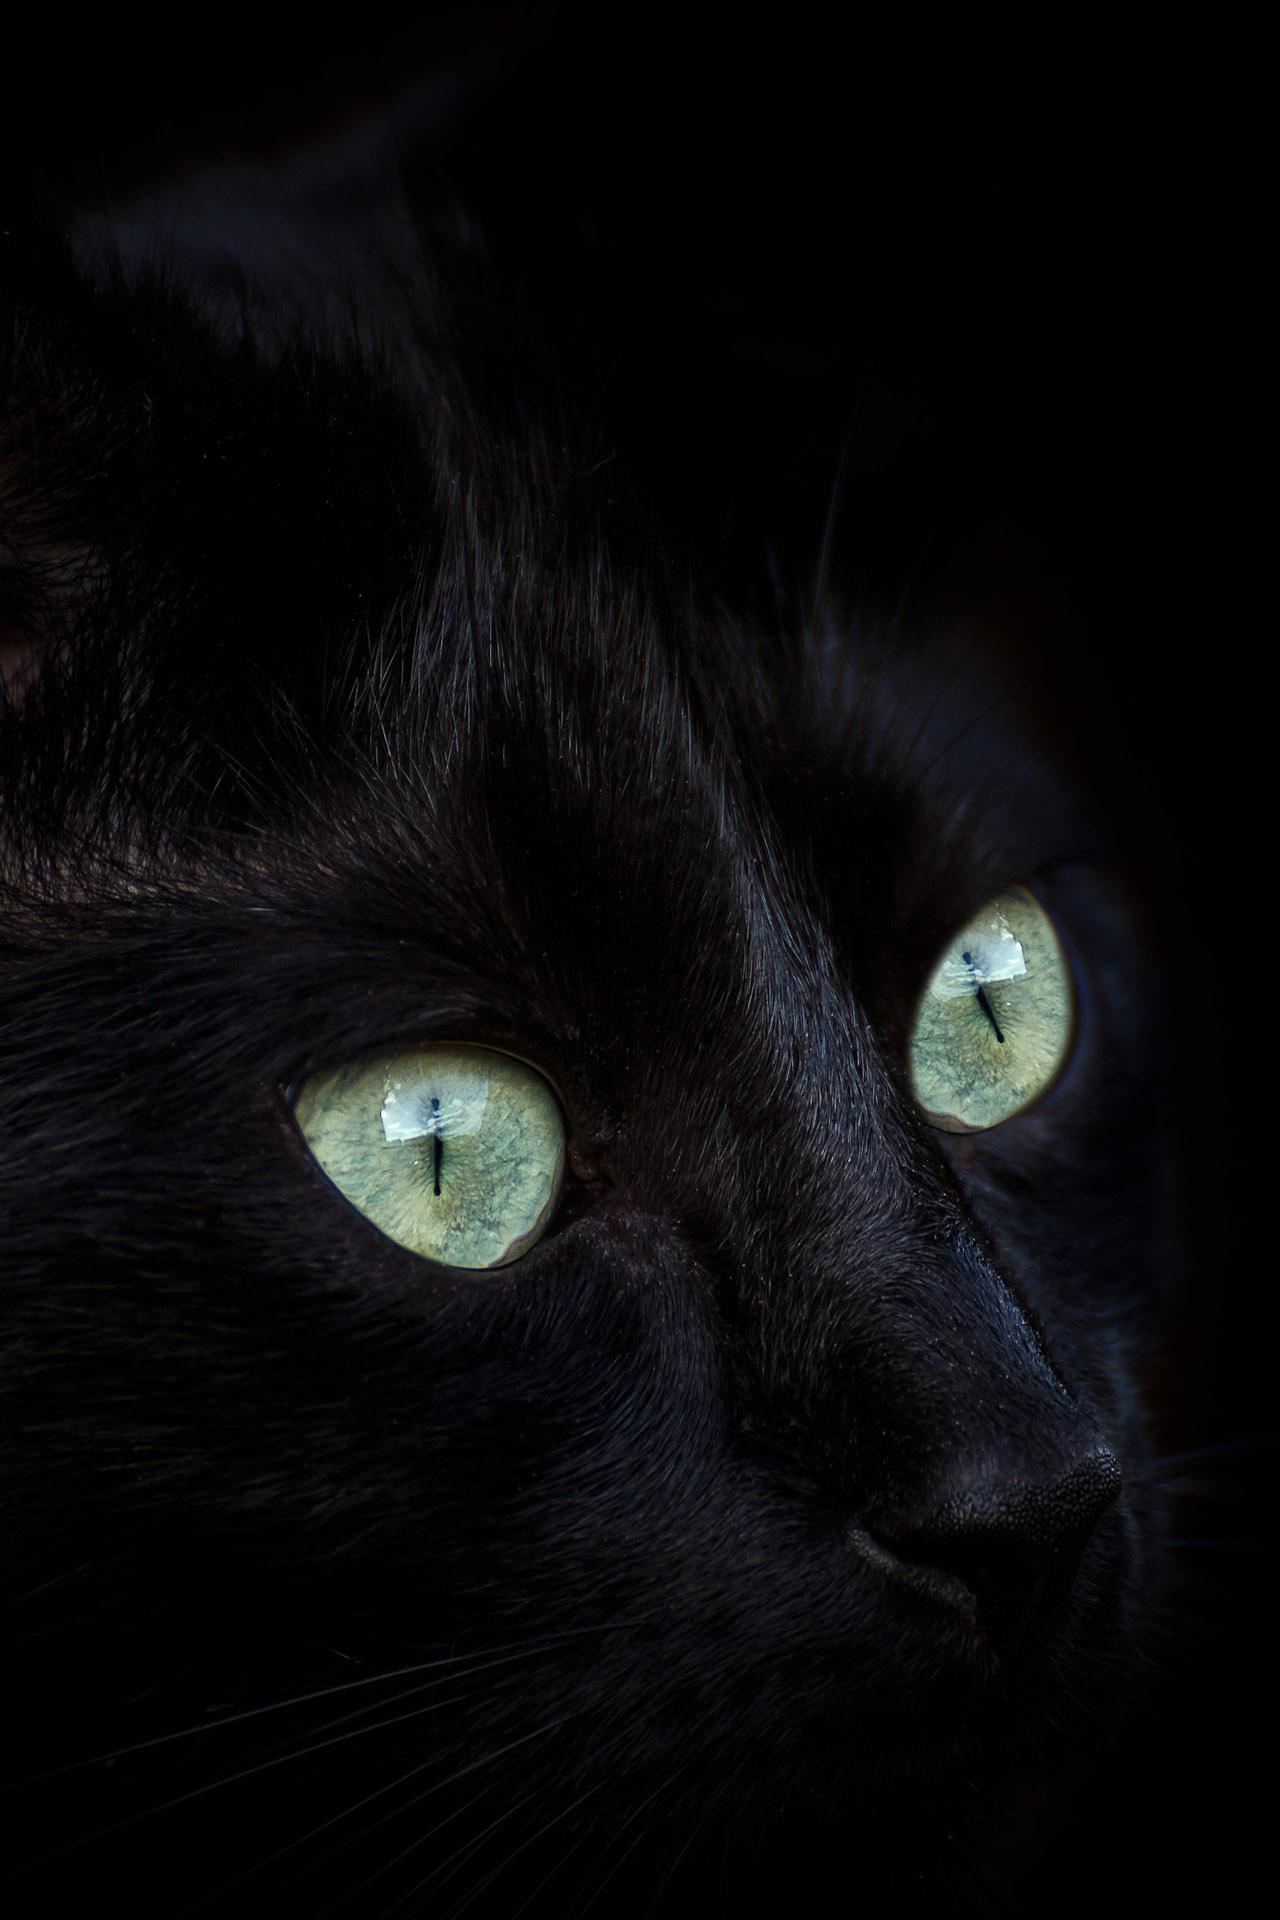 Black Cat Wallpaper Full Hd Backgrounds Themes For Android Apk Download